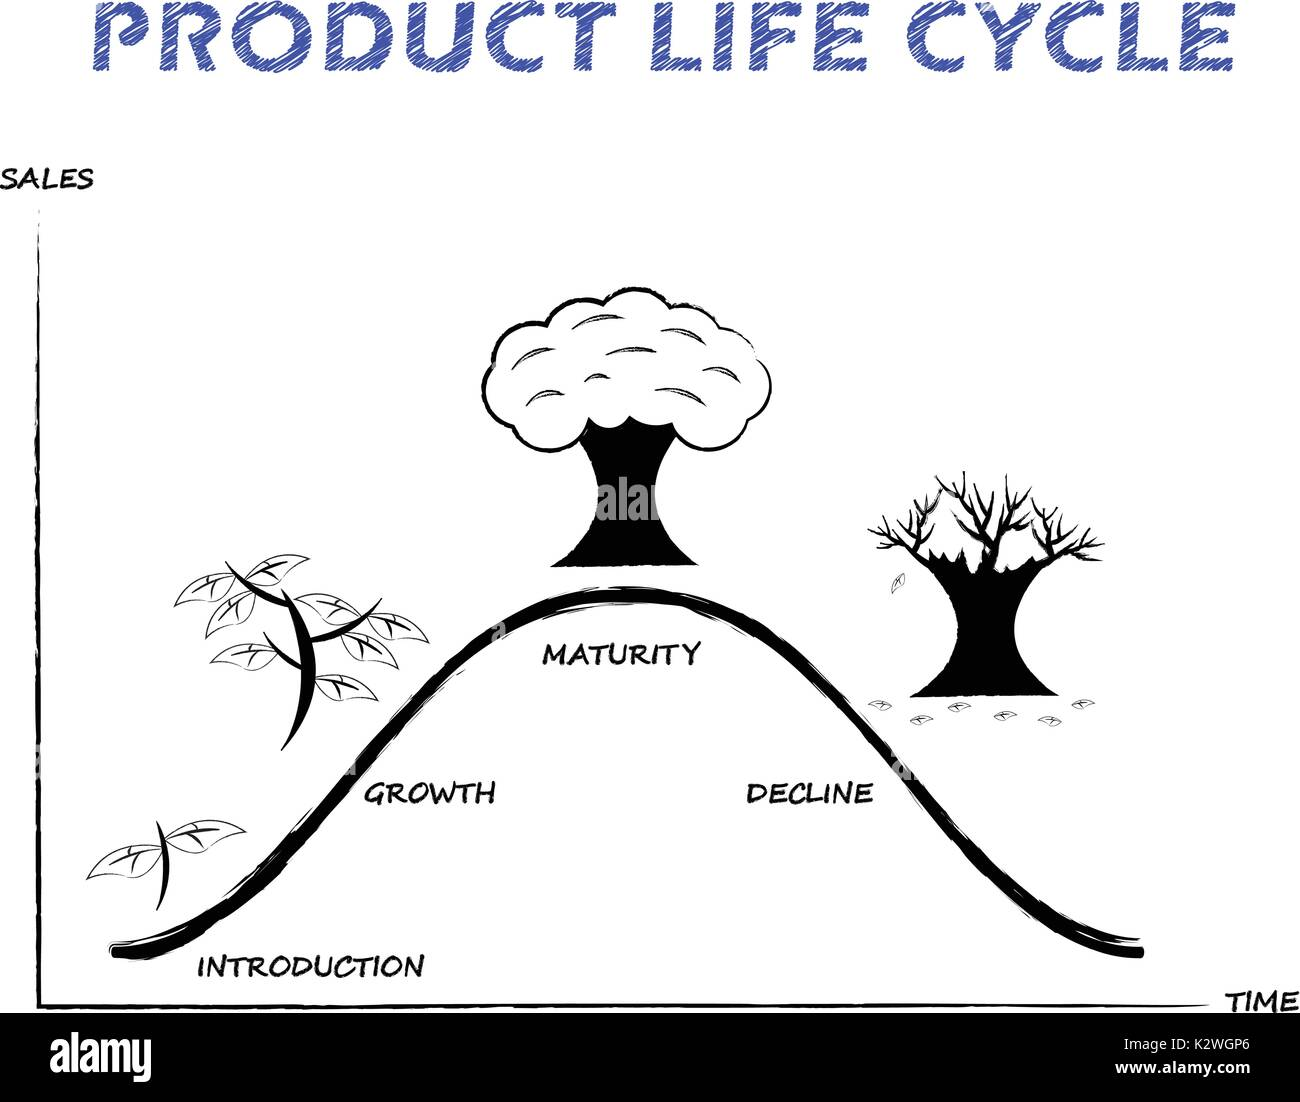 Black White Product Life Cycle Diagram Is Drew By Pencil